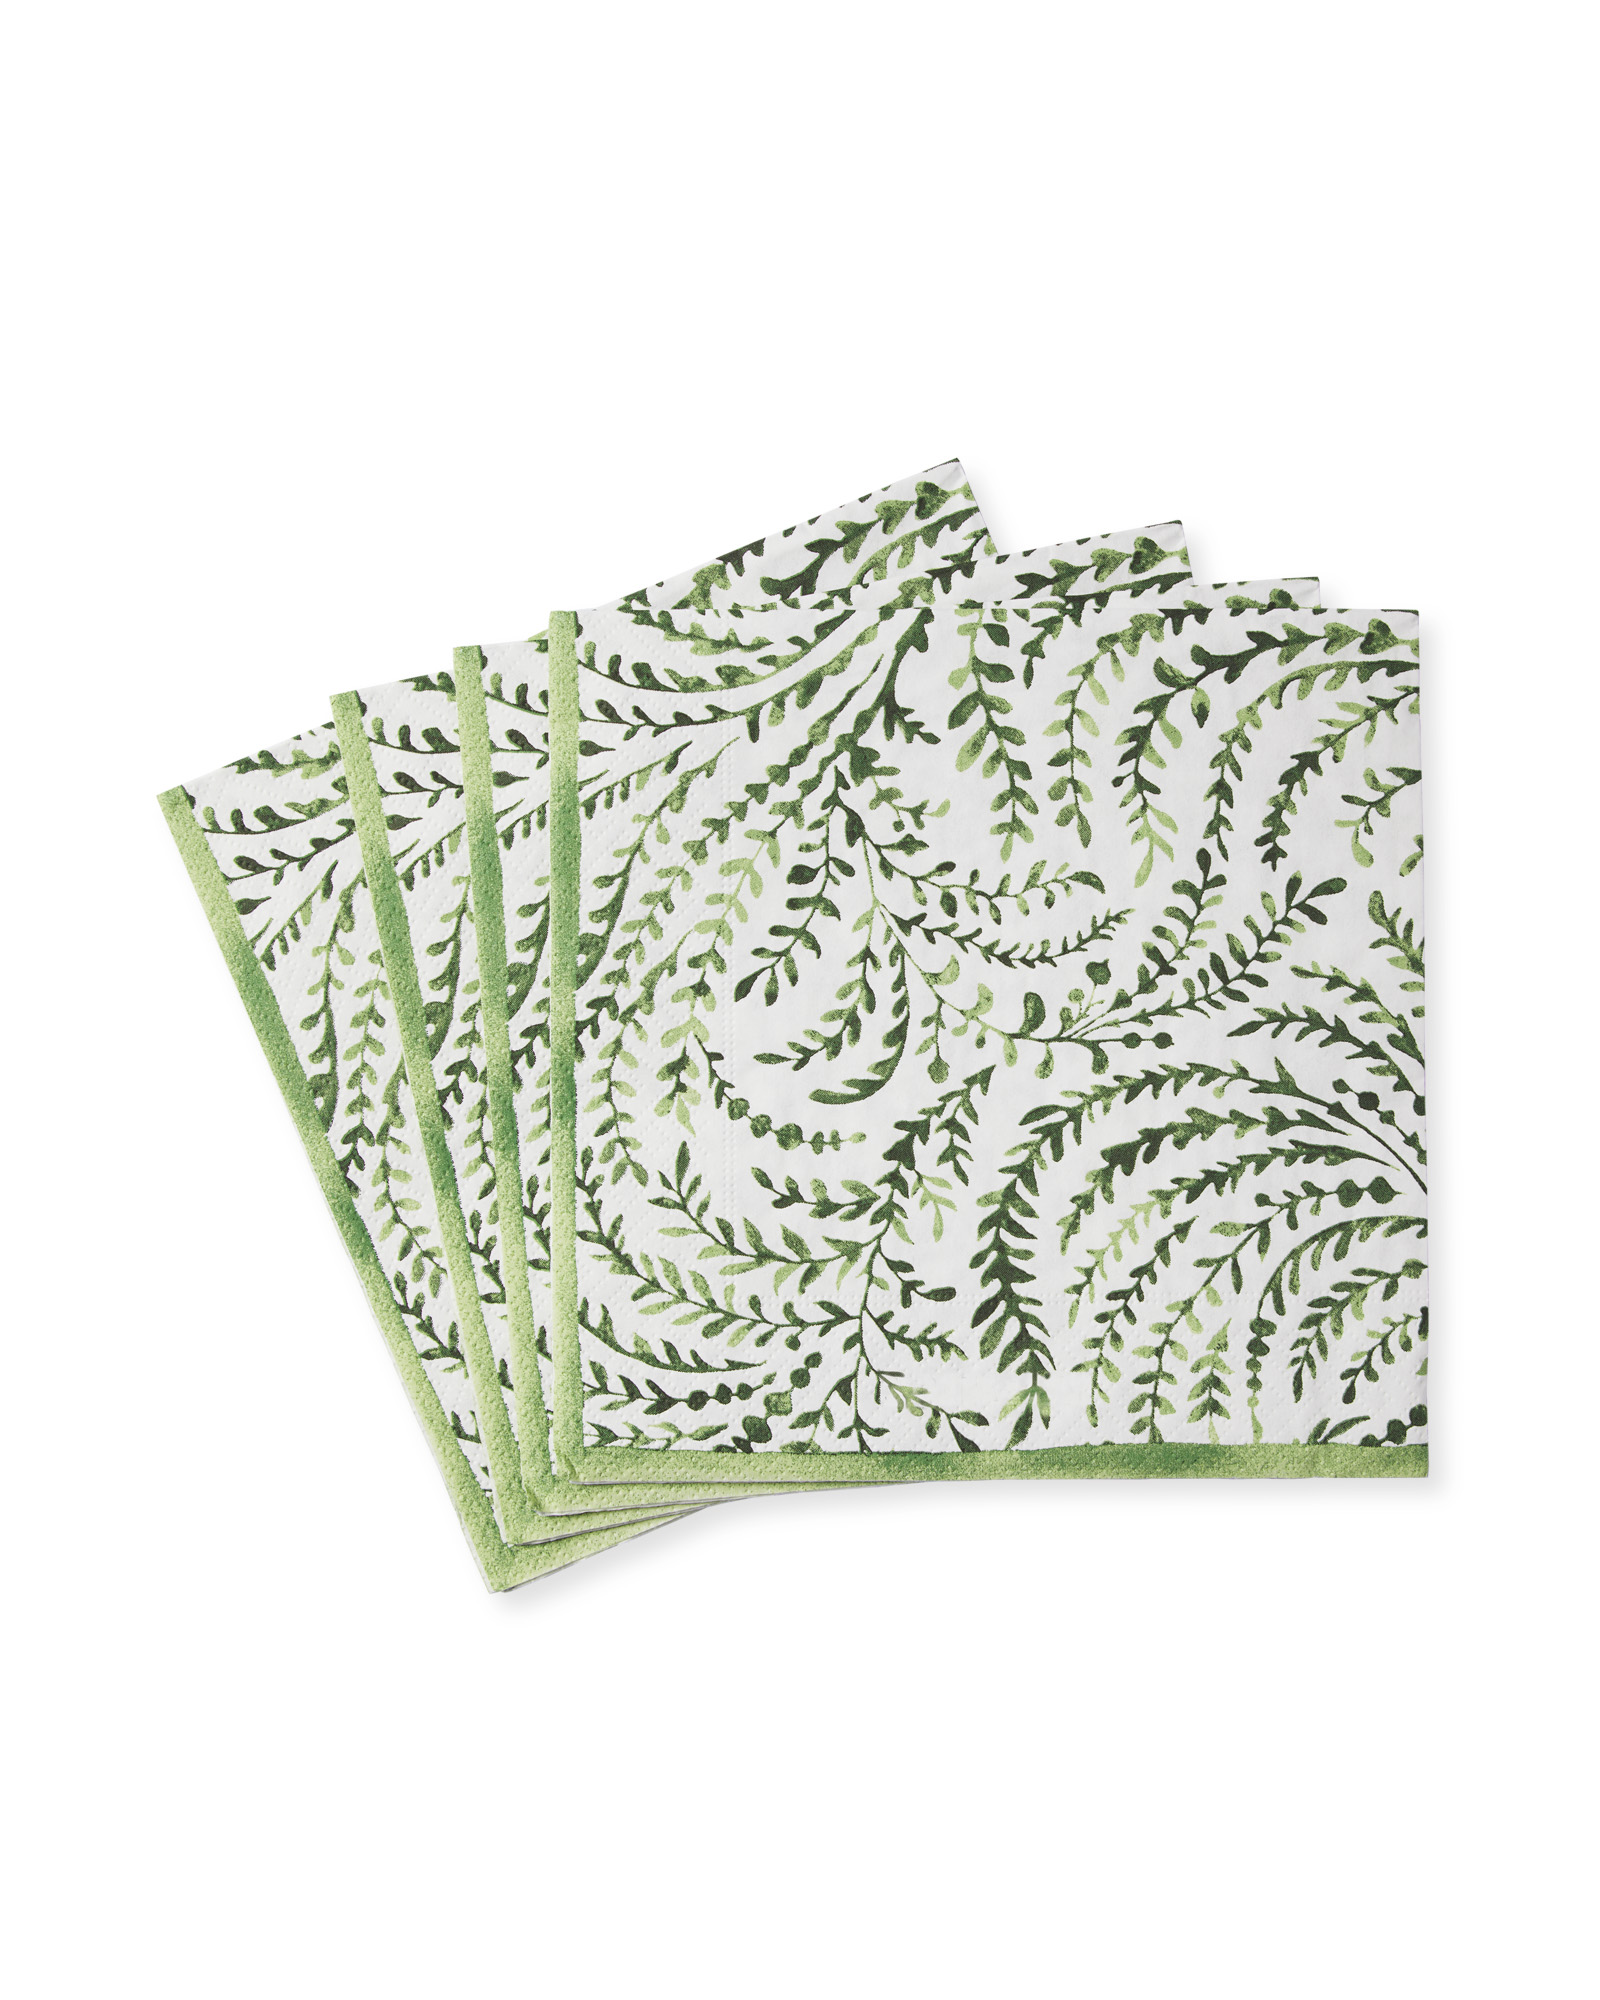 Priano Napkins - Luncheon (Set of 20), Green